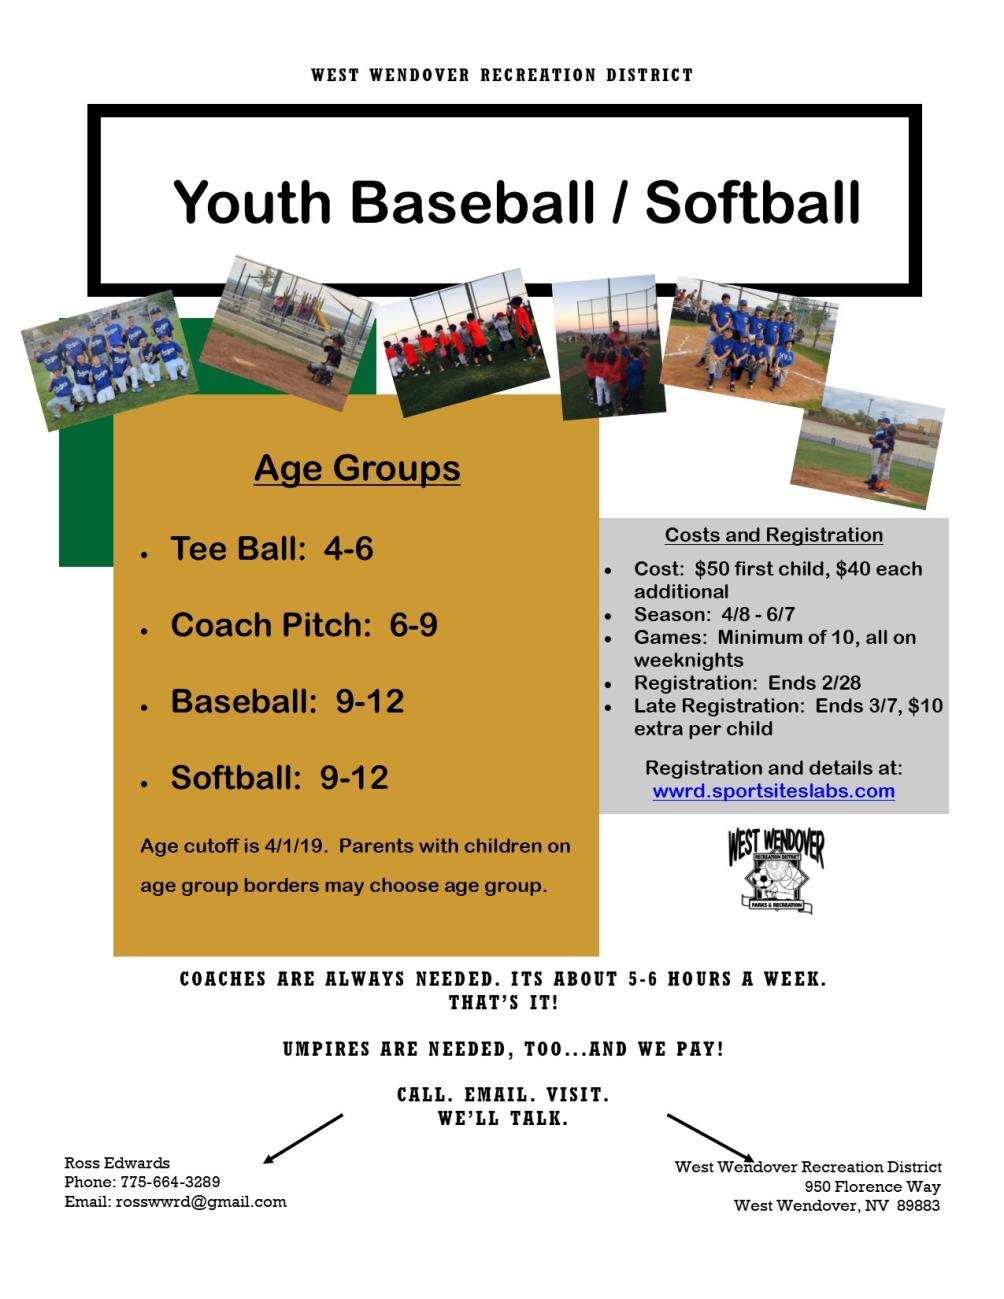 WWRD Youth Baseball/Softball Registration Underway - Ends Feb. 28th